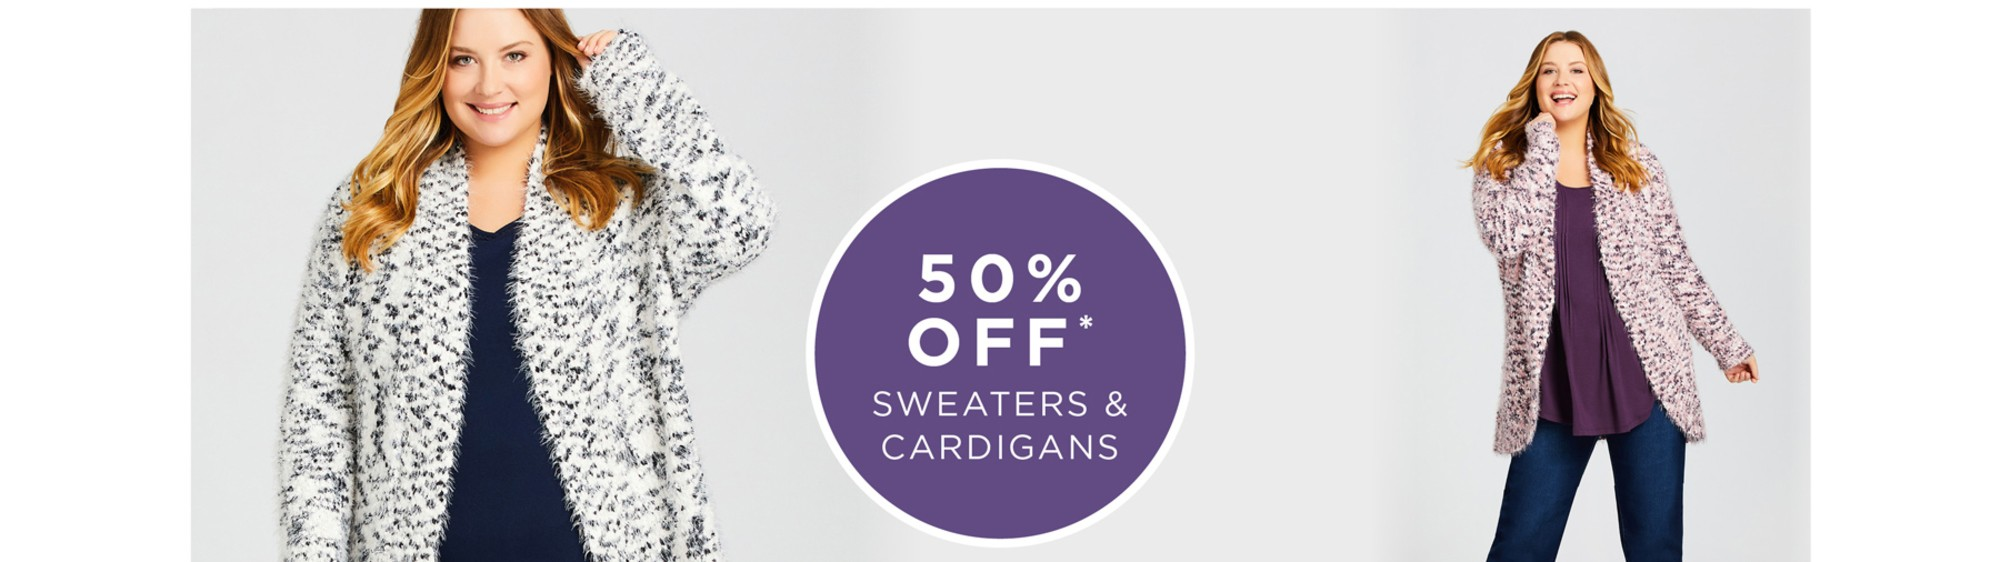 50% Off* Sweaters & Cardigans - See Terms & Conditions for full details - prices as marked - SHOP NOW